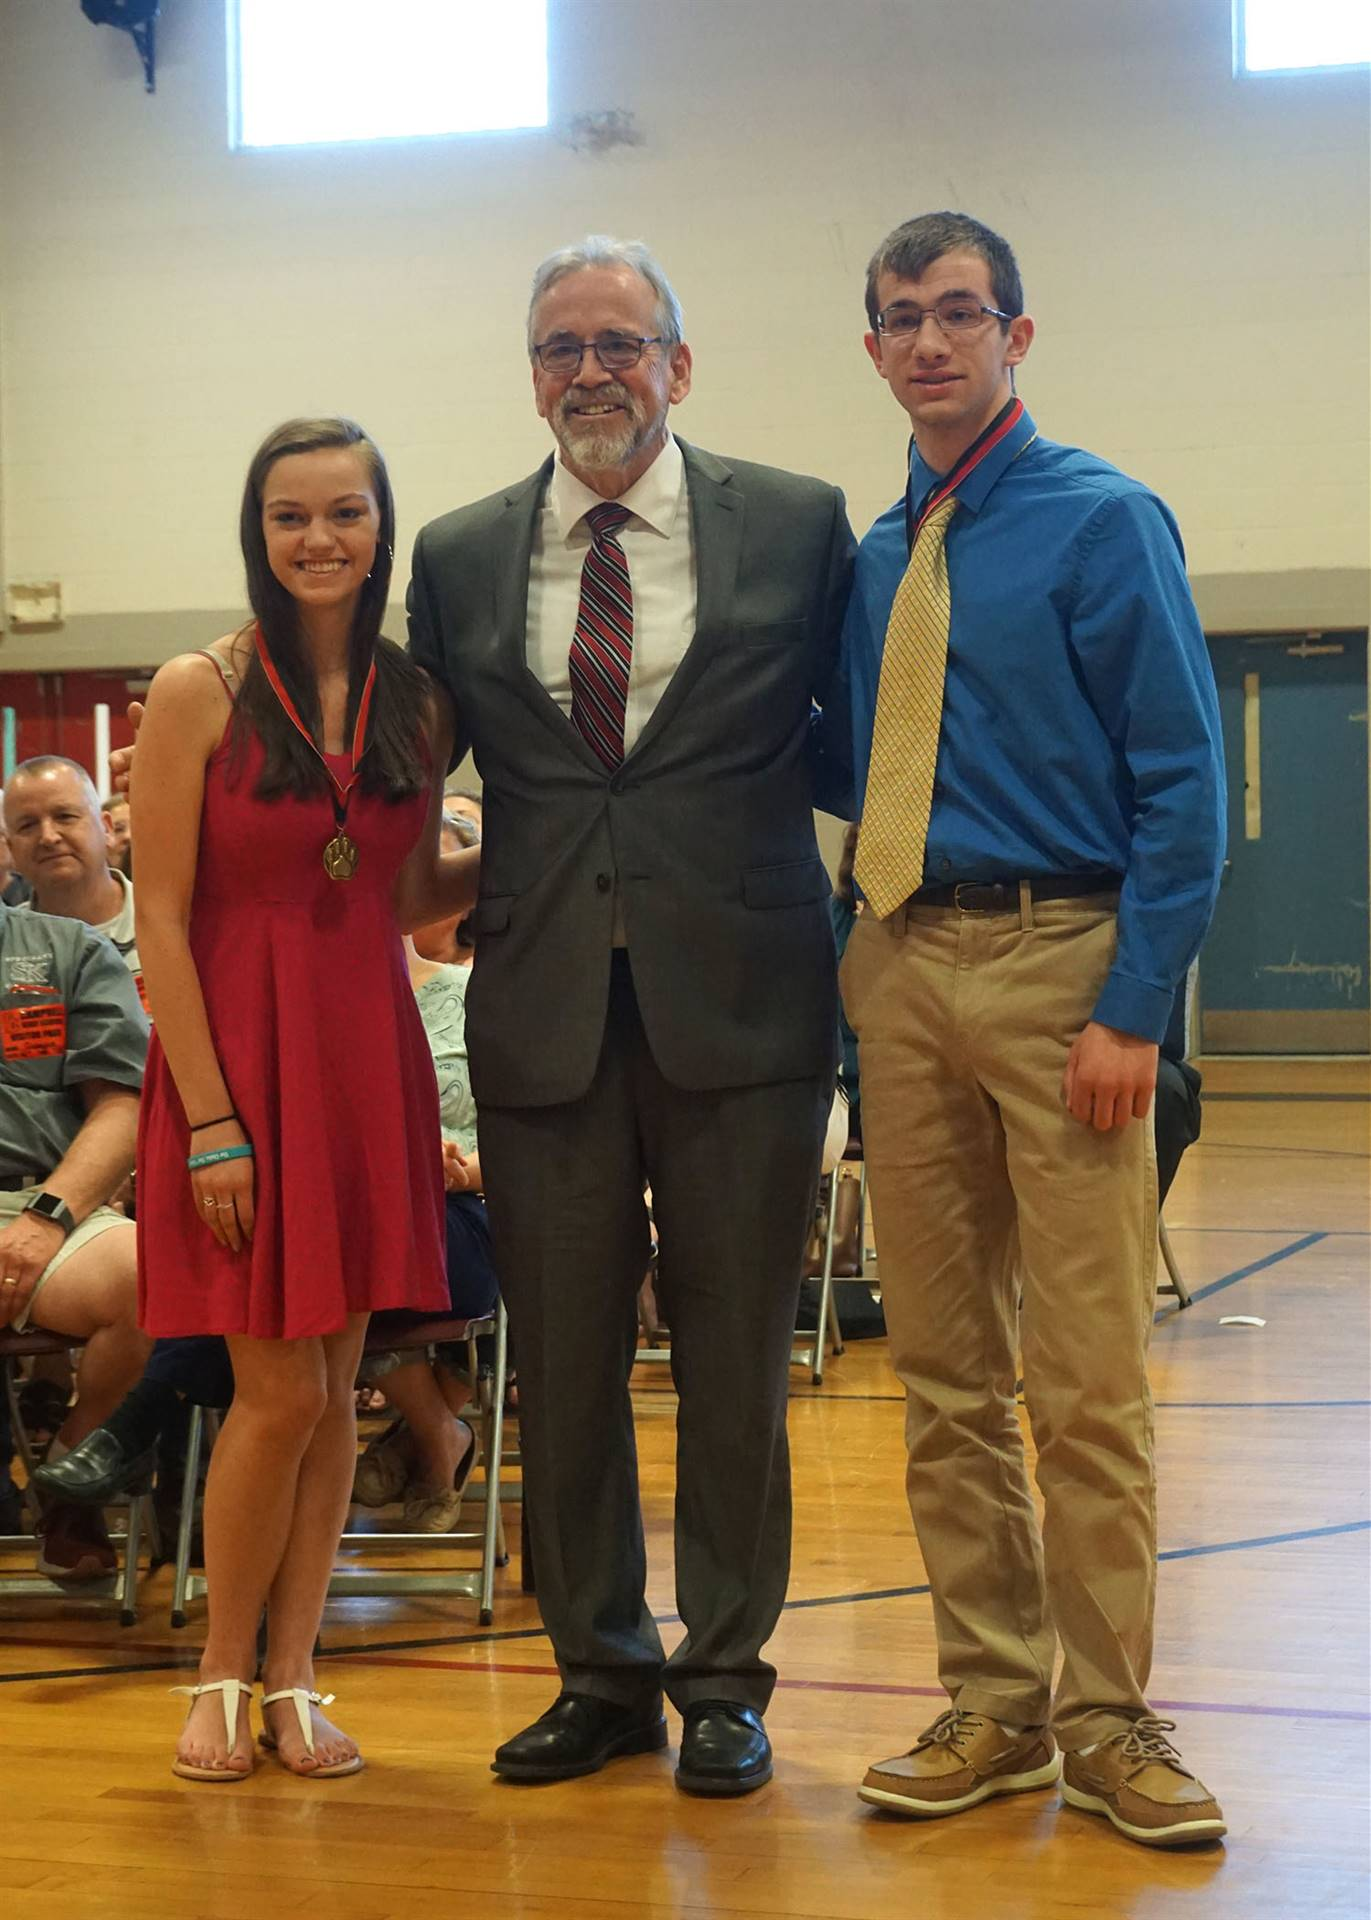 Character award presented to Anthony & Rebecca